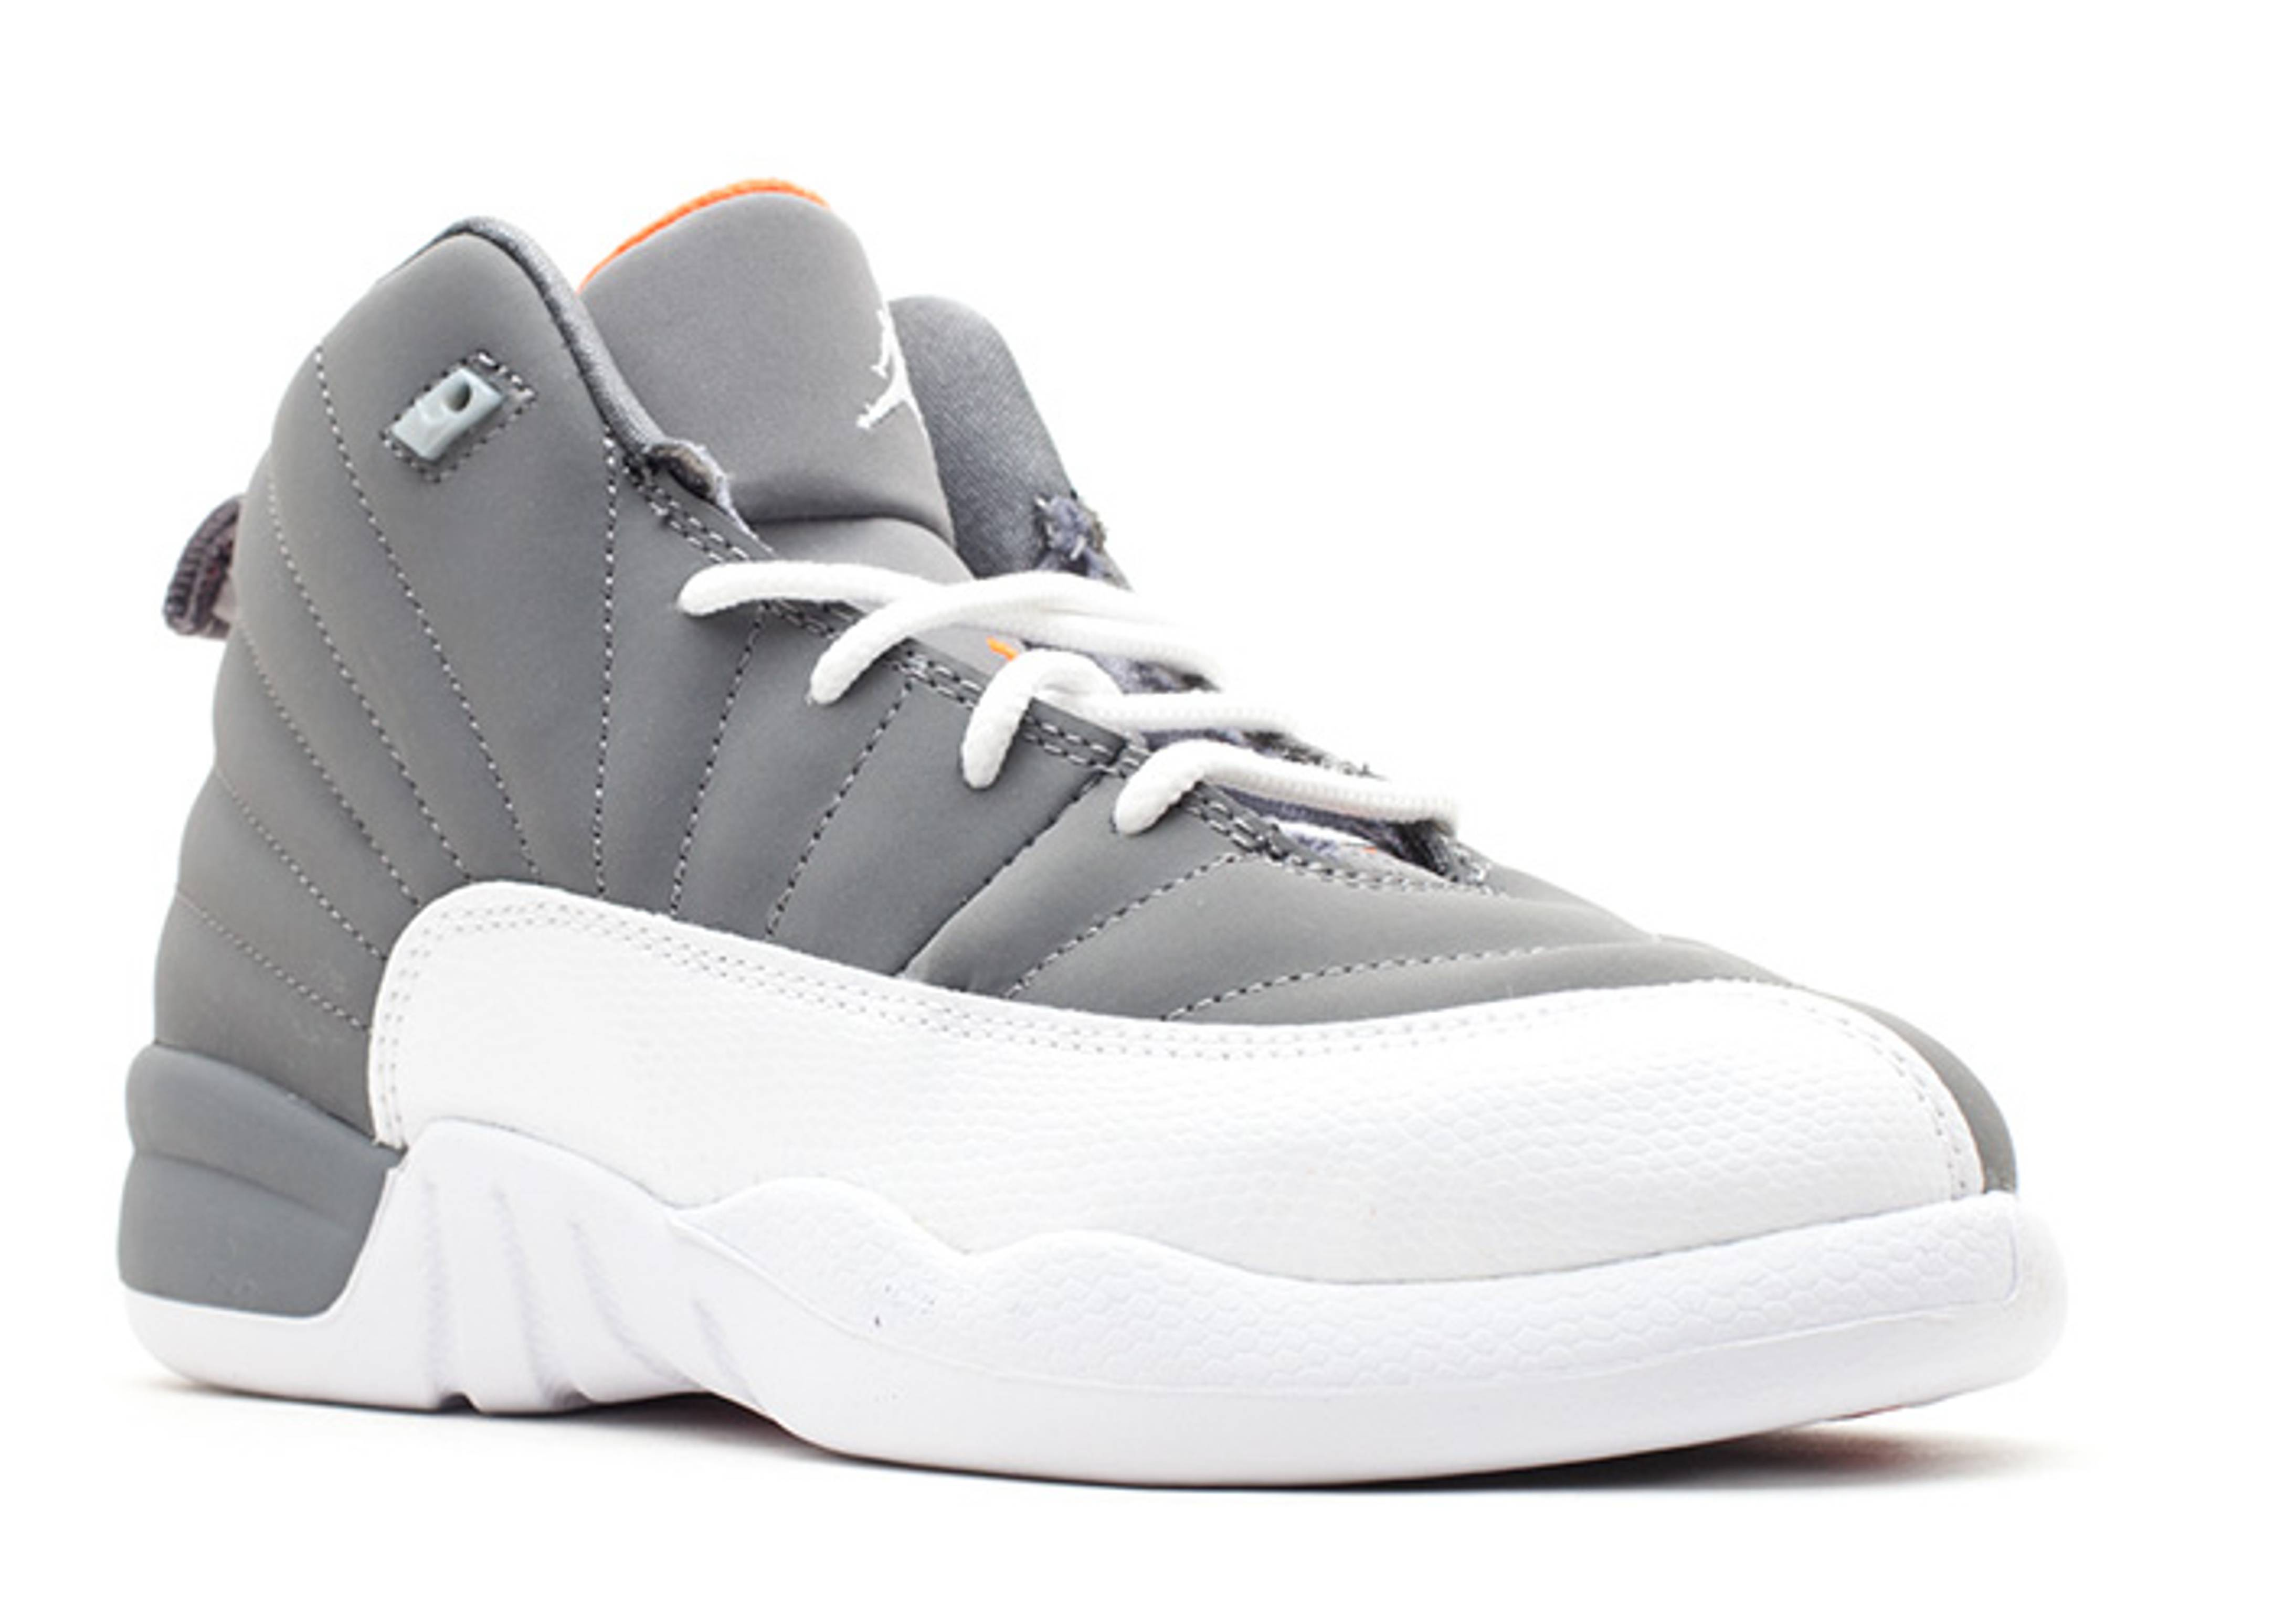 huge discount 2e5d0 63543 Jordan 12 Retro (ps) - Air Jordan - 151186 012 - cool grey ...